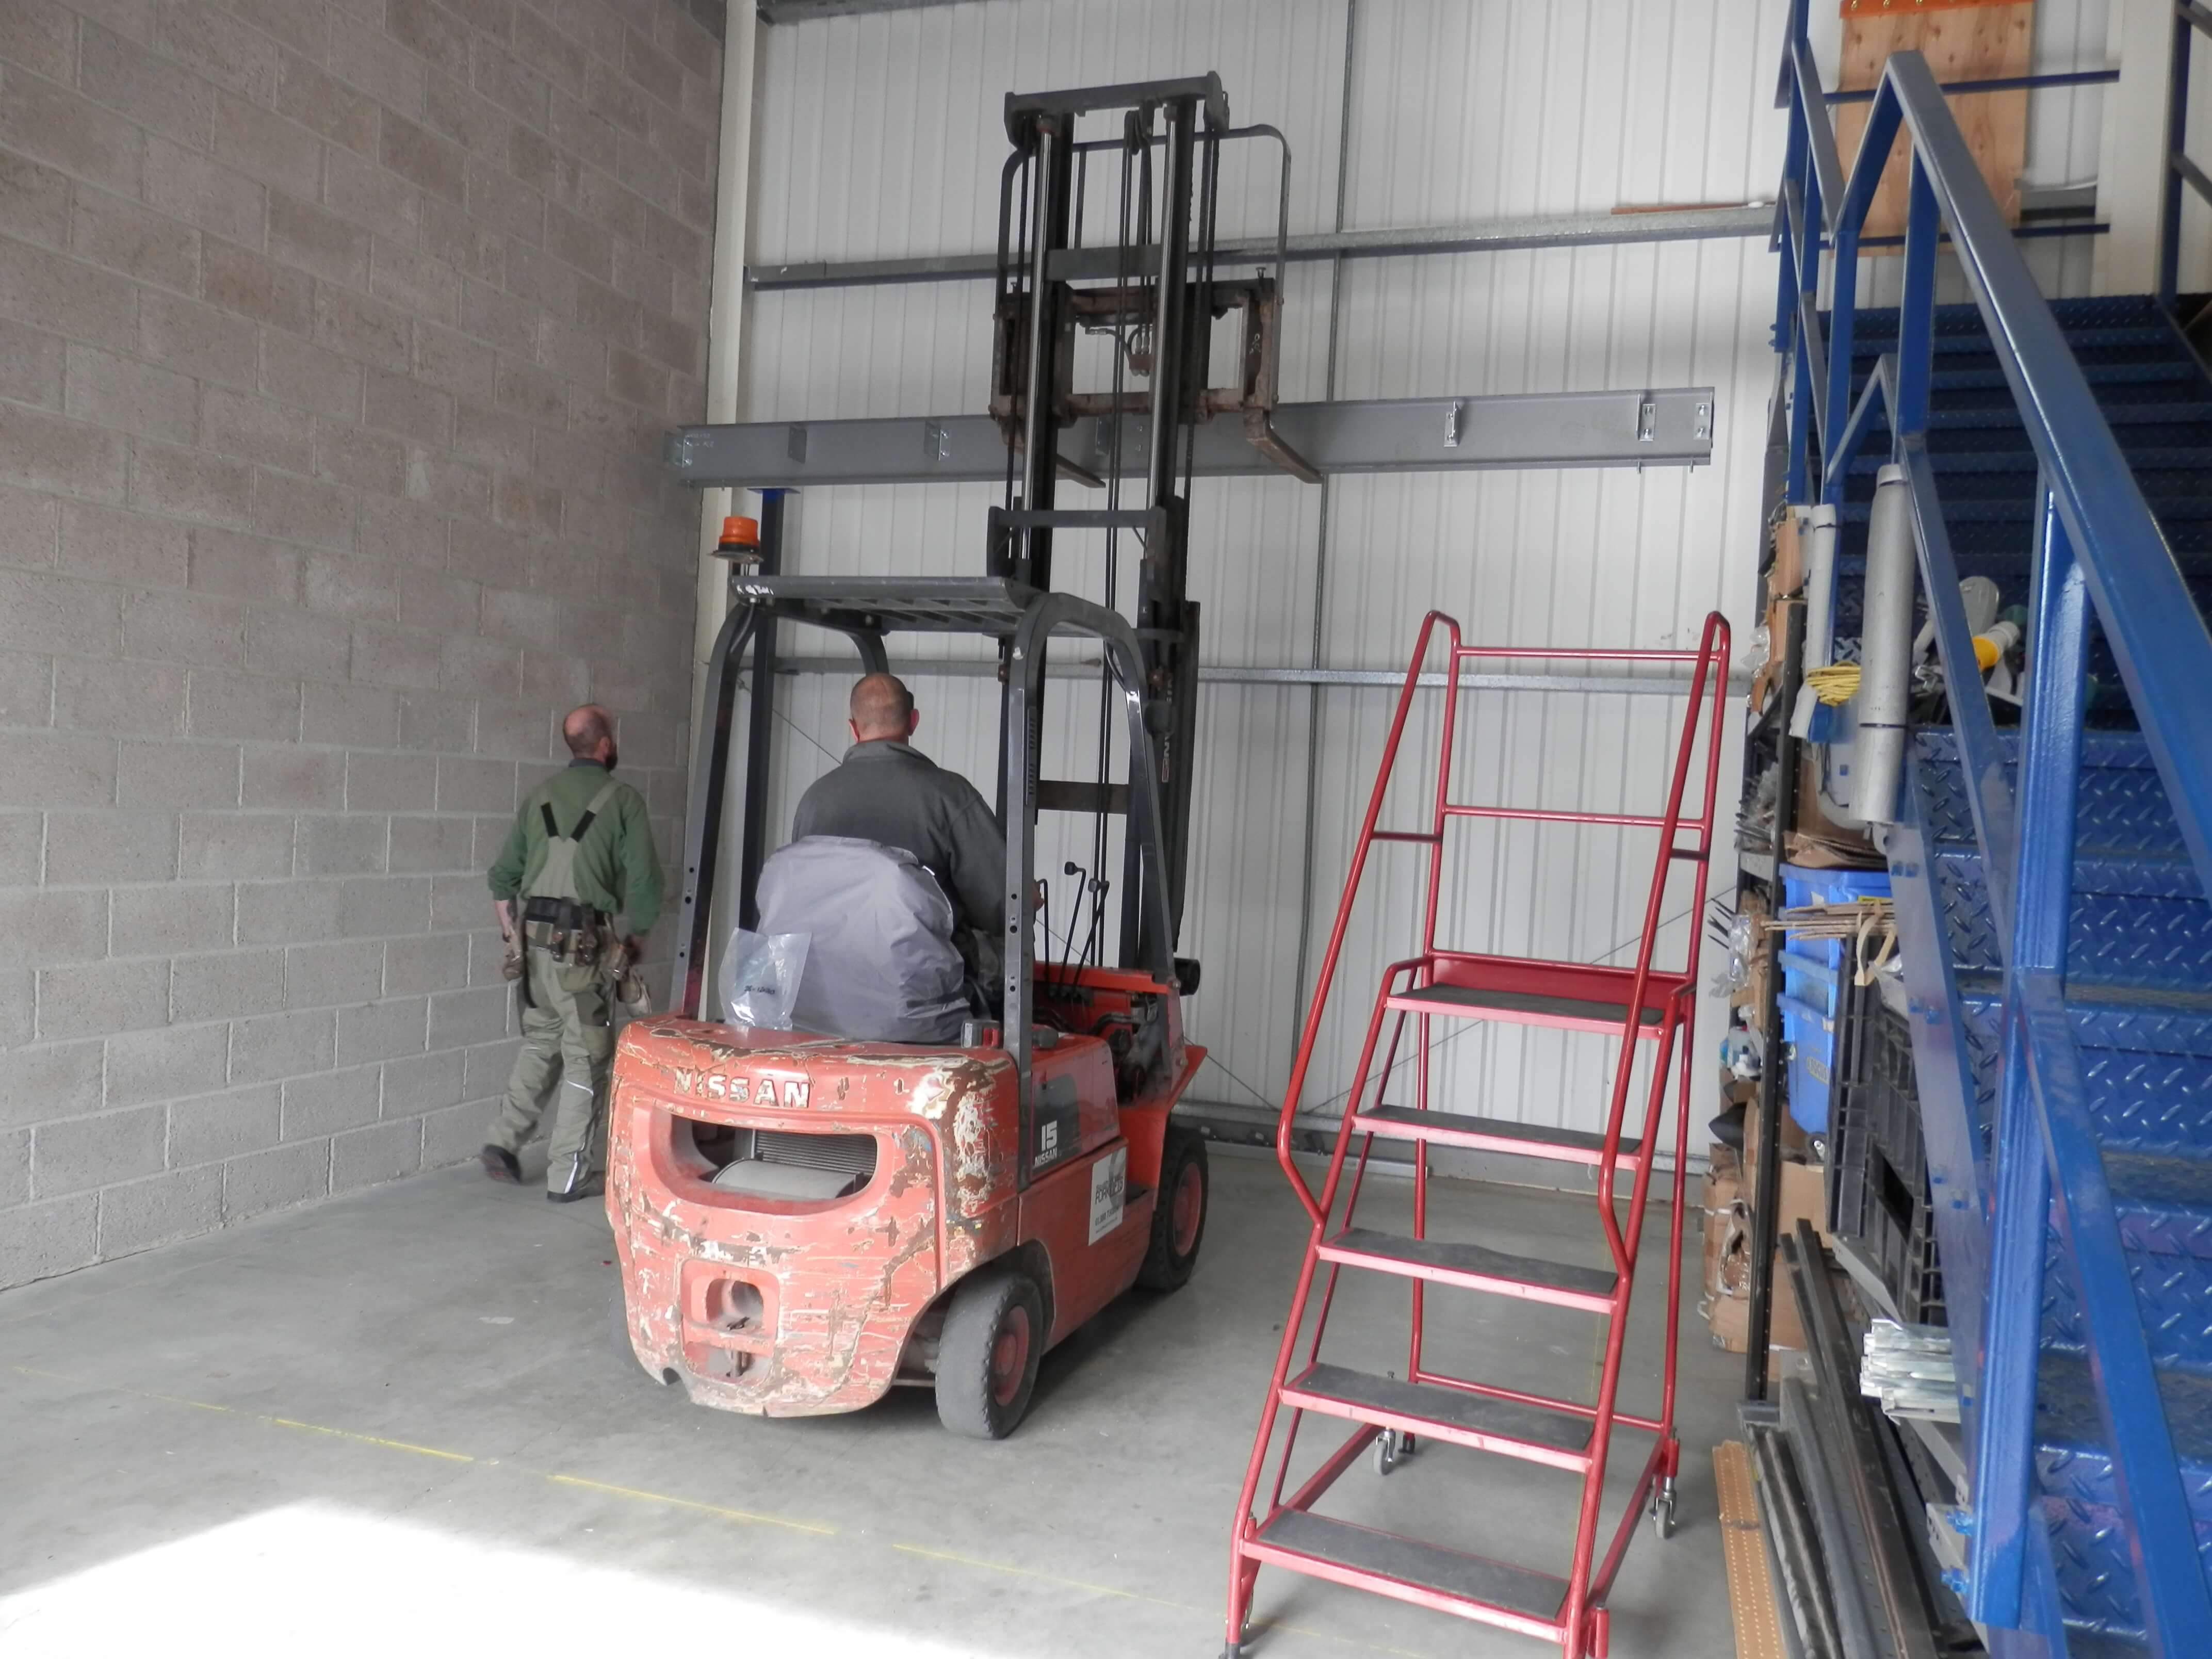 Essential a forklift is used